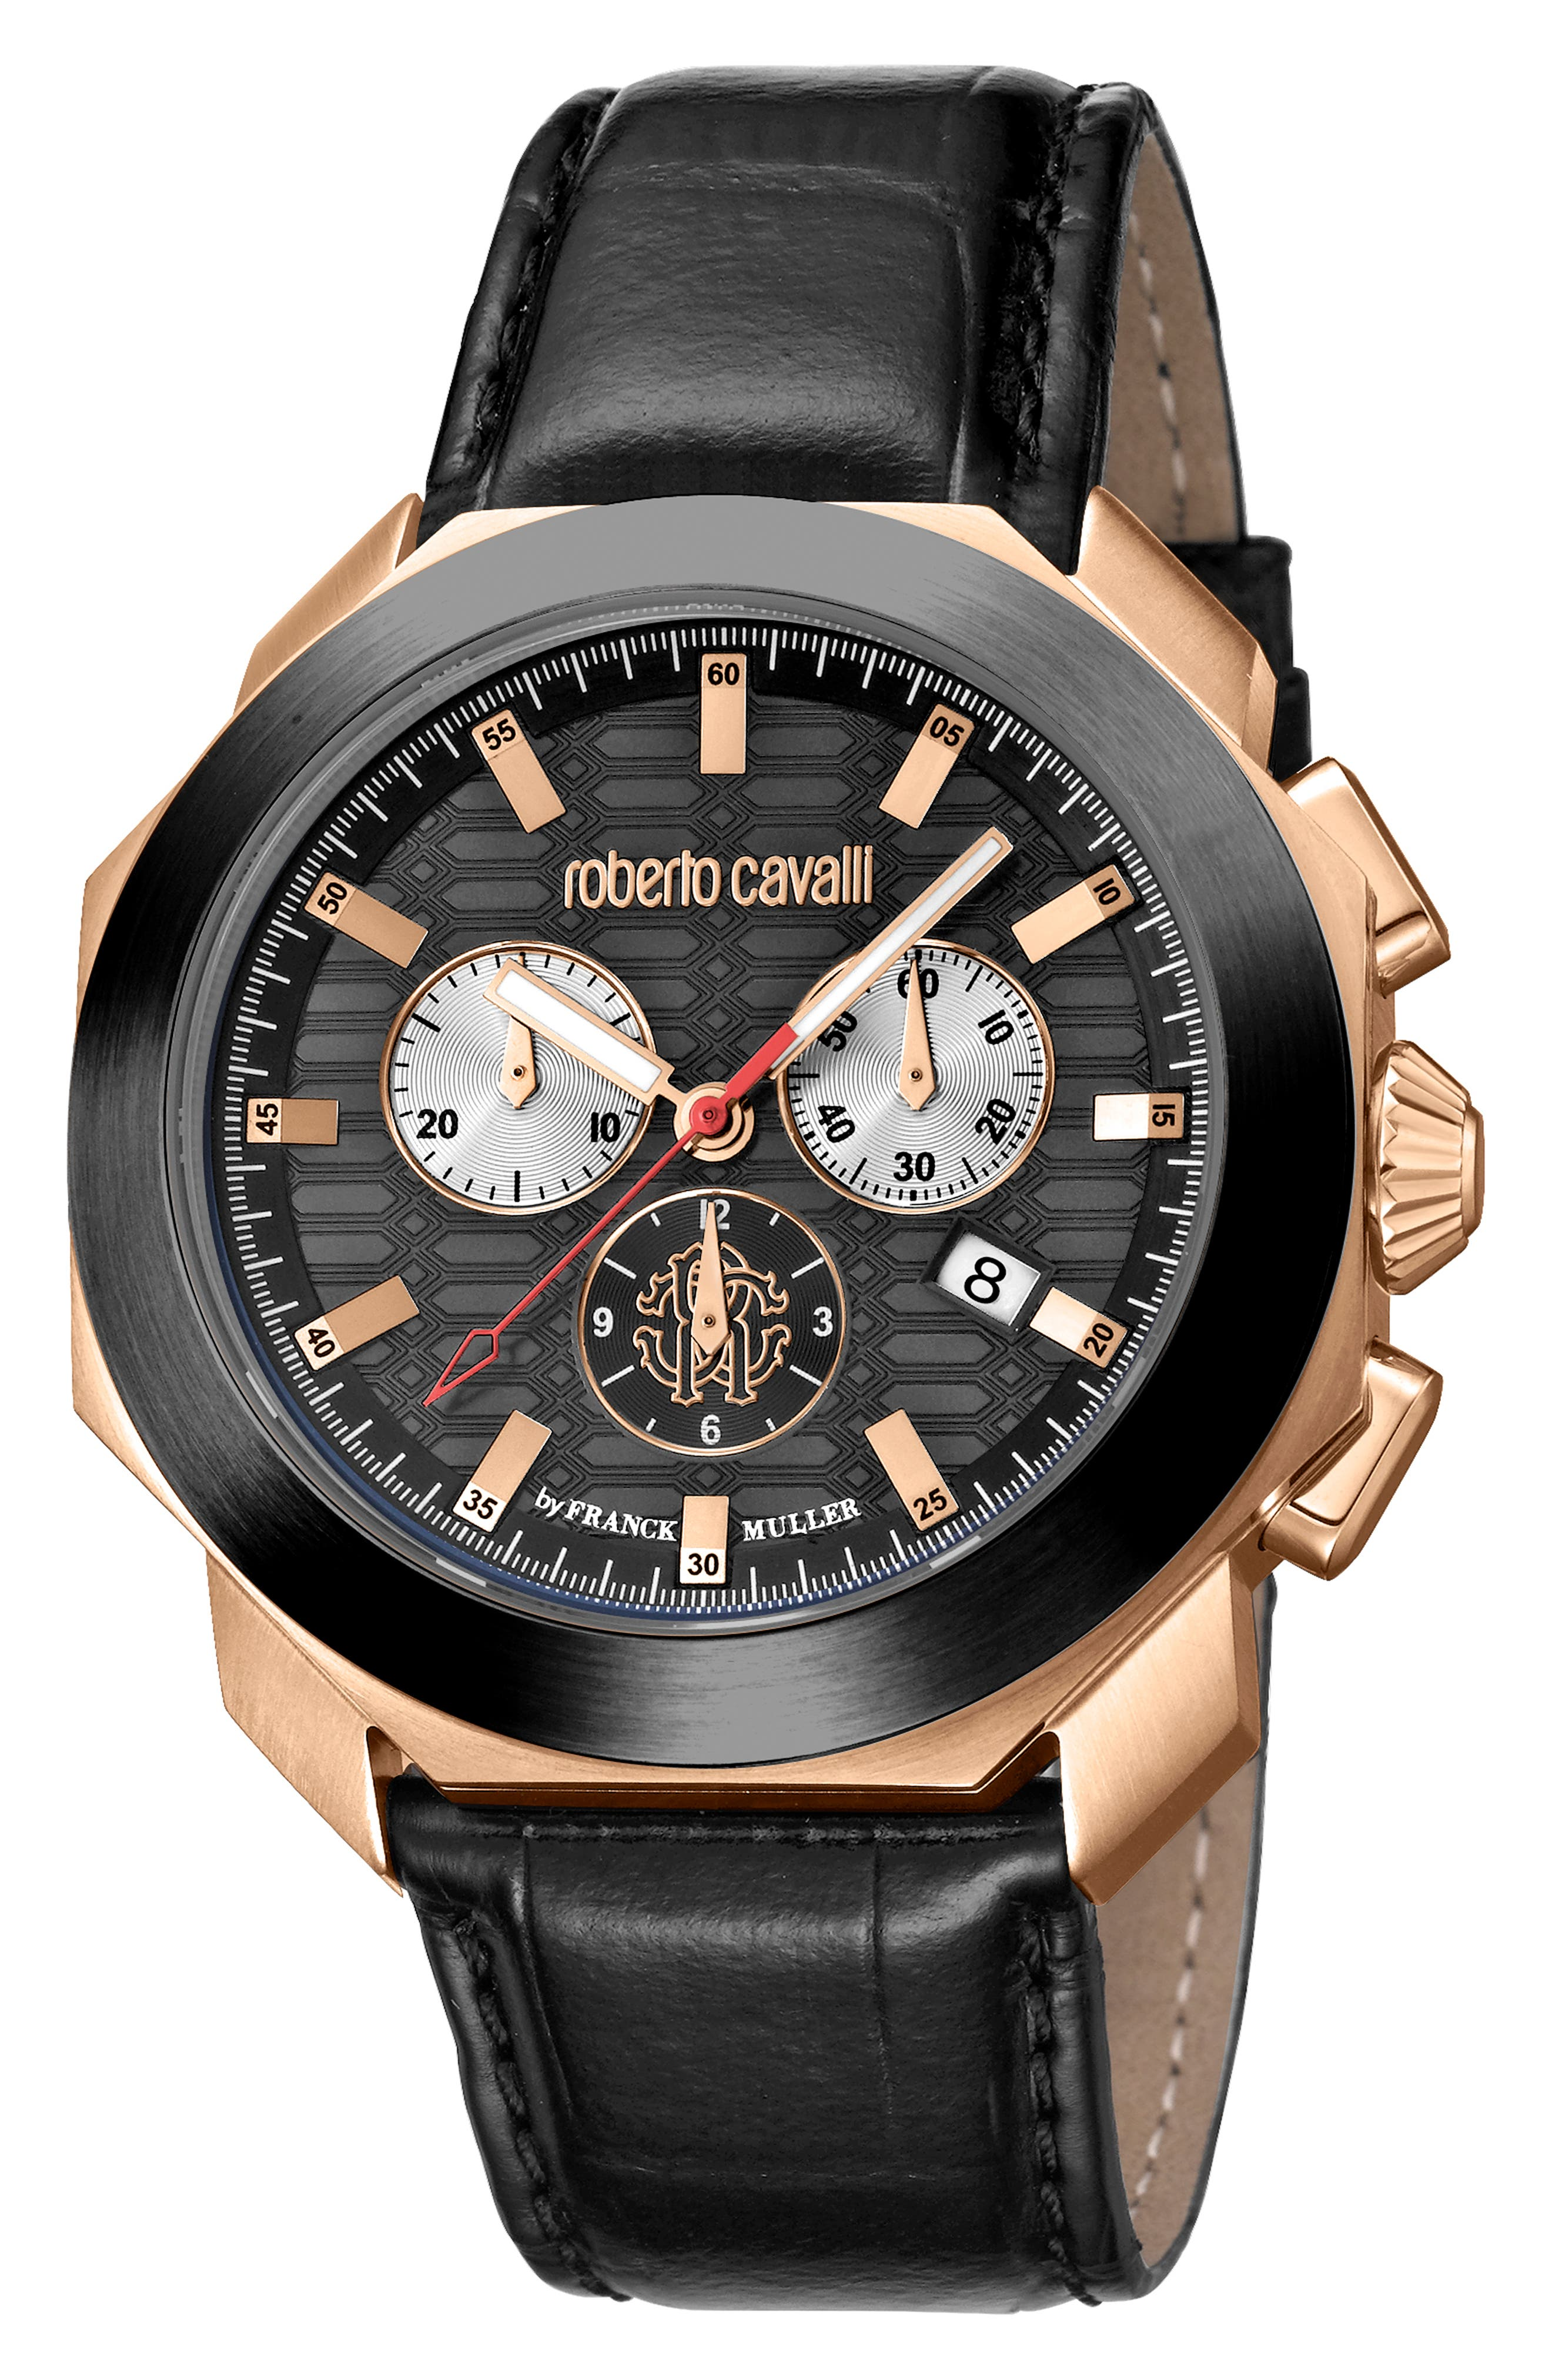 Sport Chronograph Leather Strap Watch,                             Main thumbnail 1, color,                             BLACK/ ROSE GOLD/ BLACK